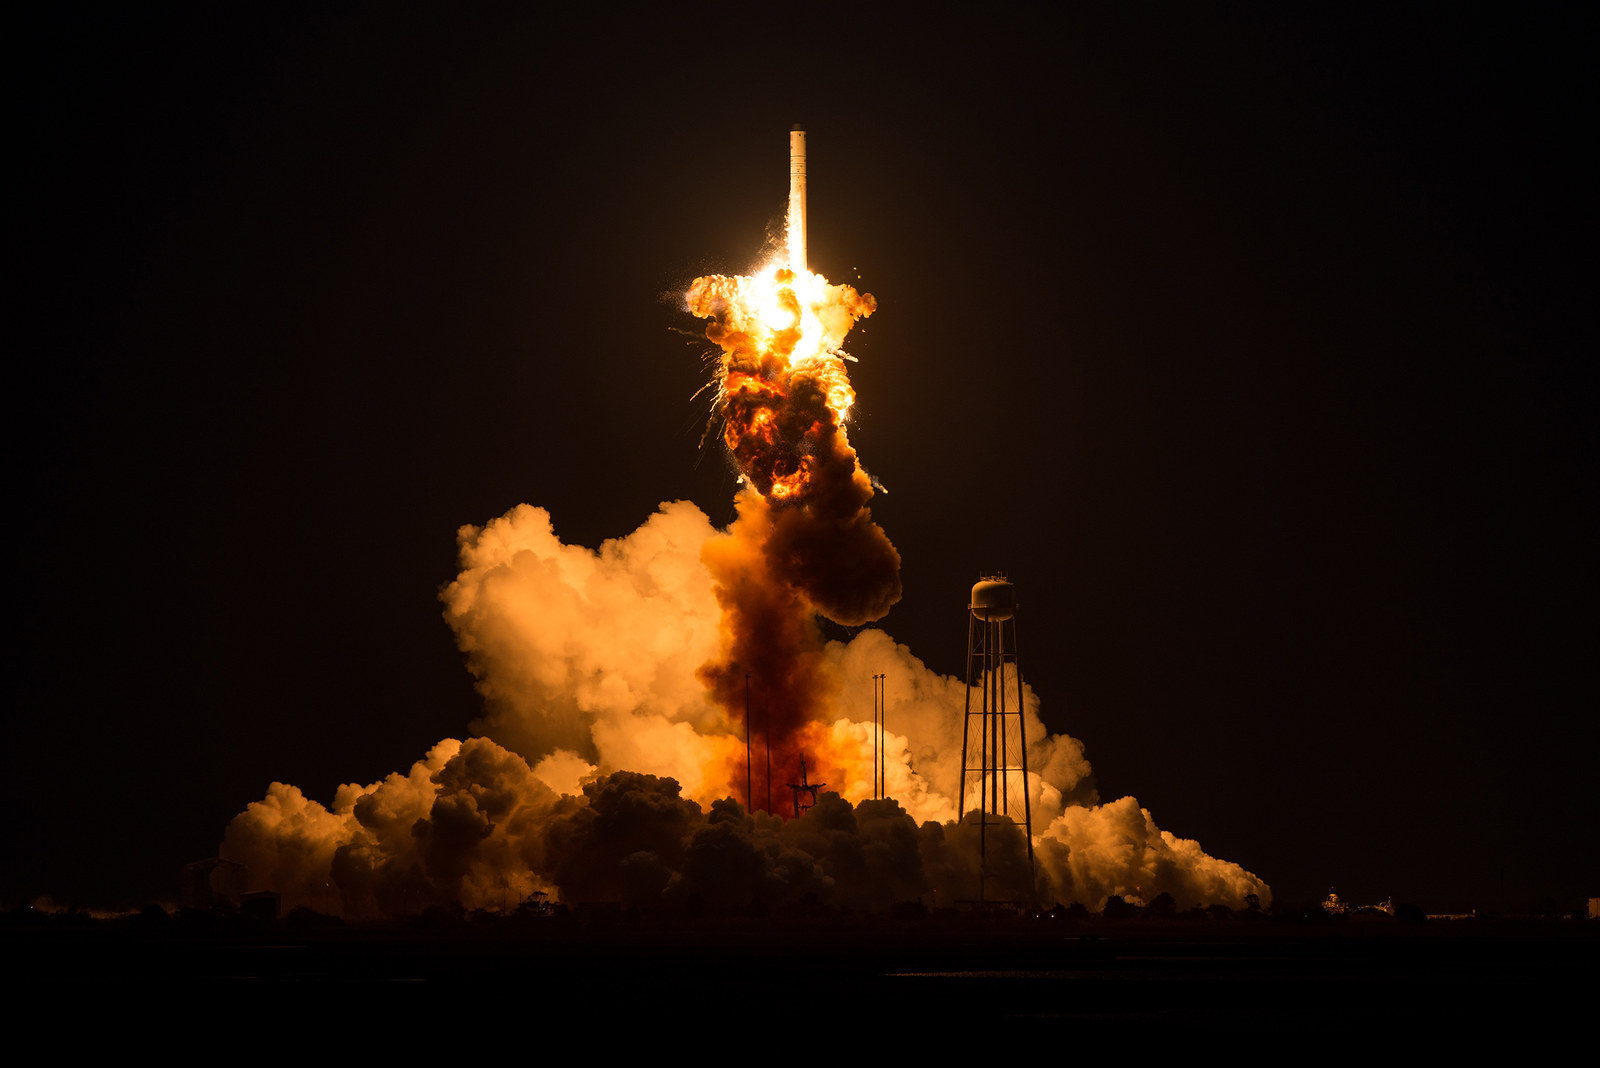 The Orbital Sciences Corporation Antares rocket with